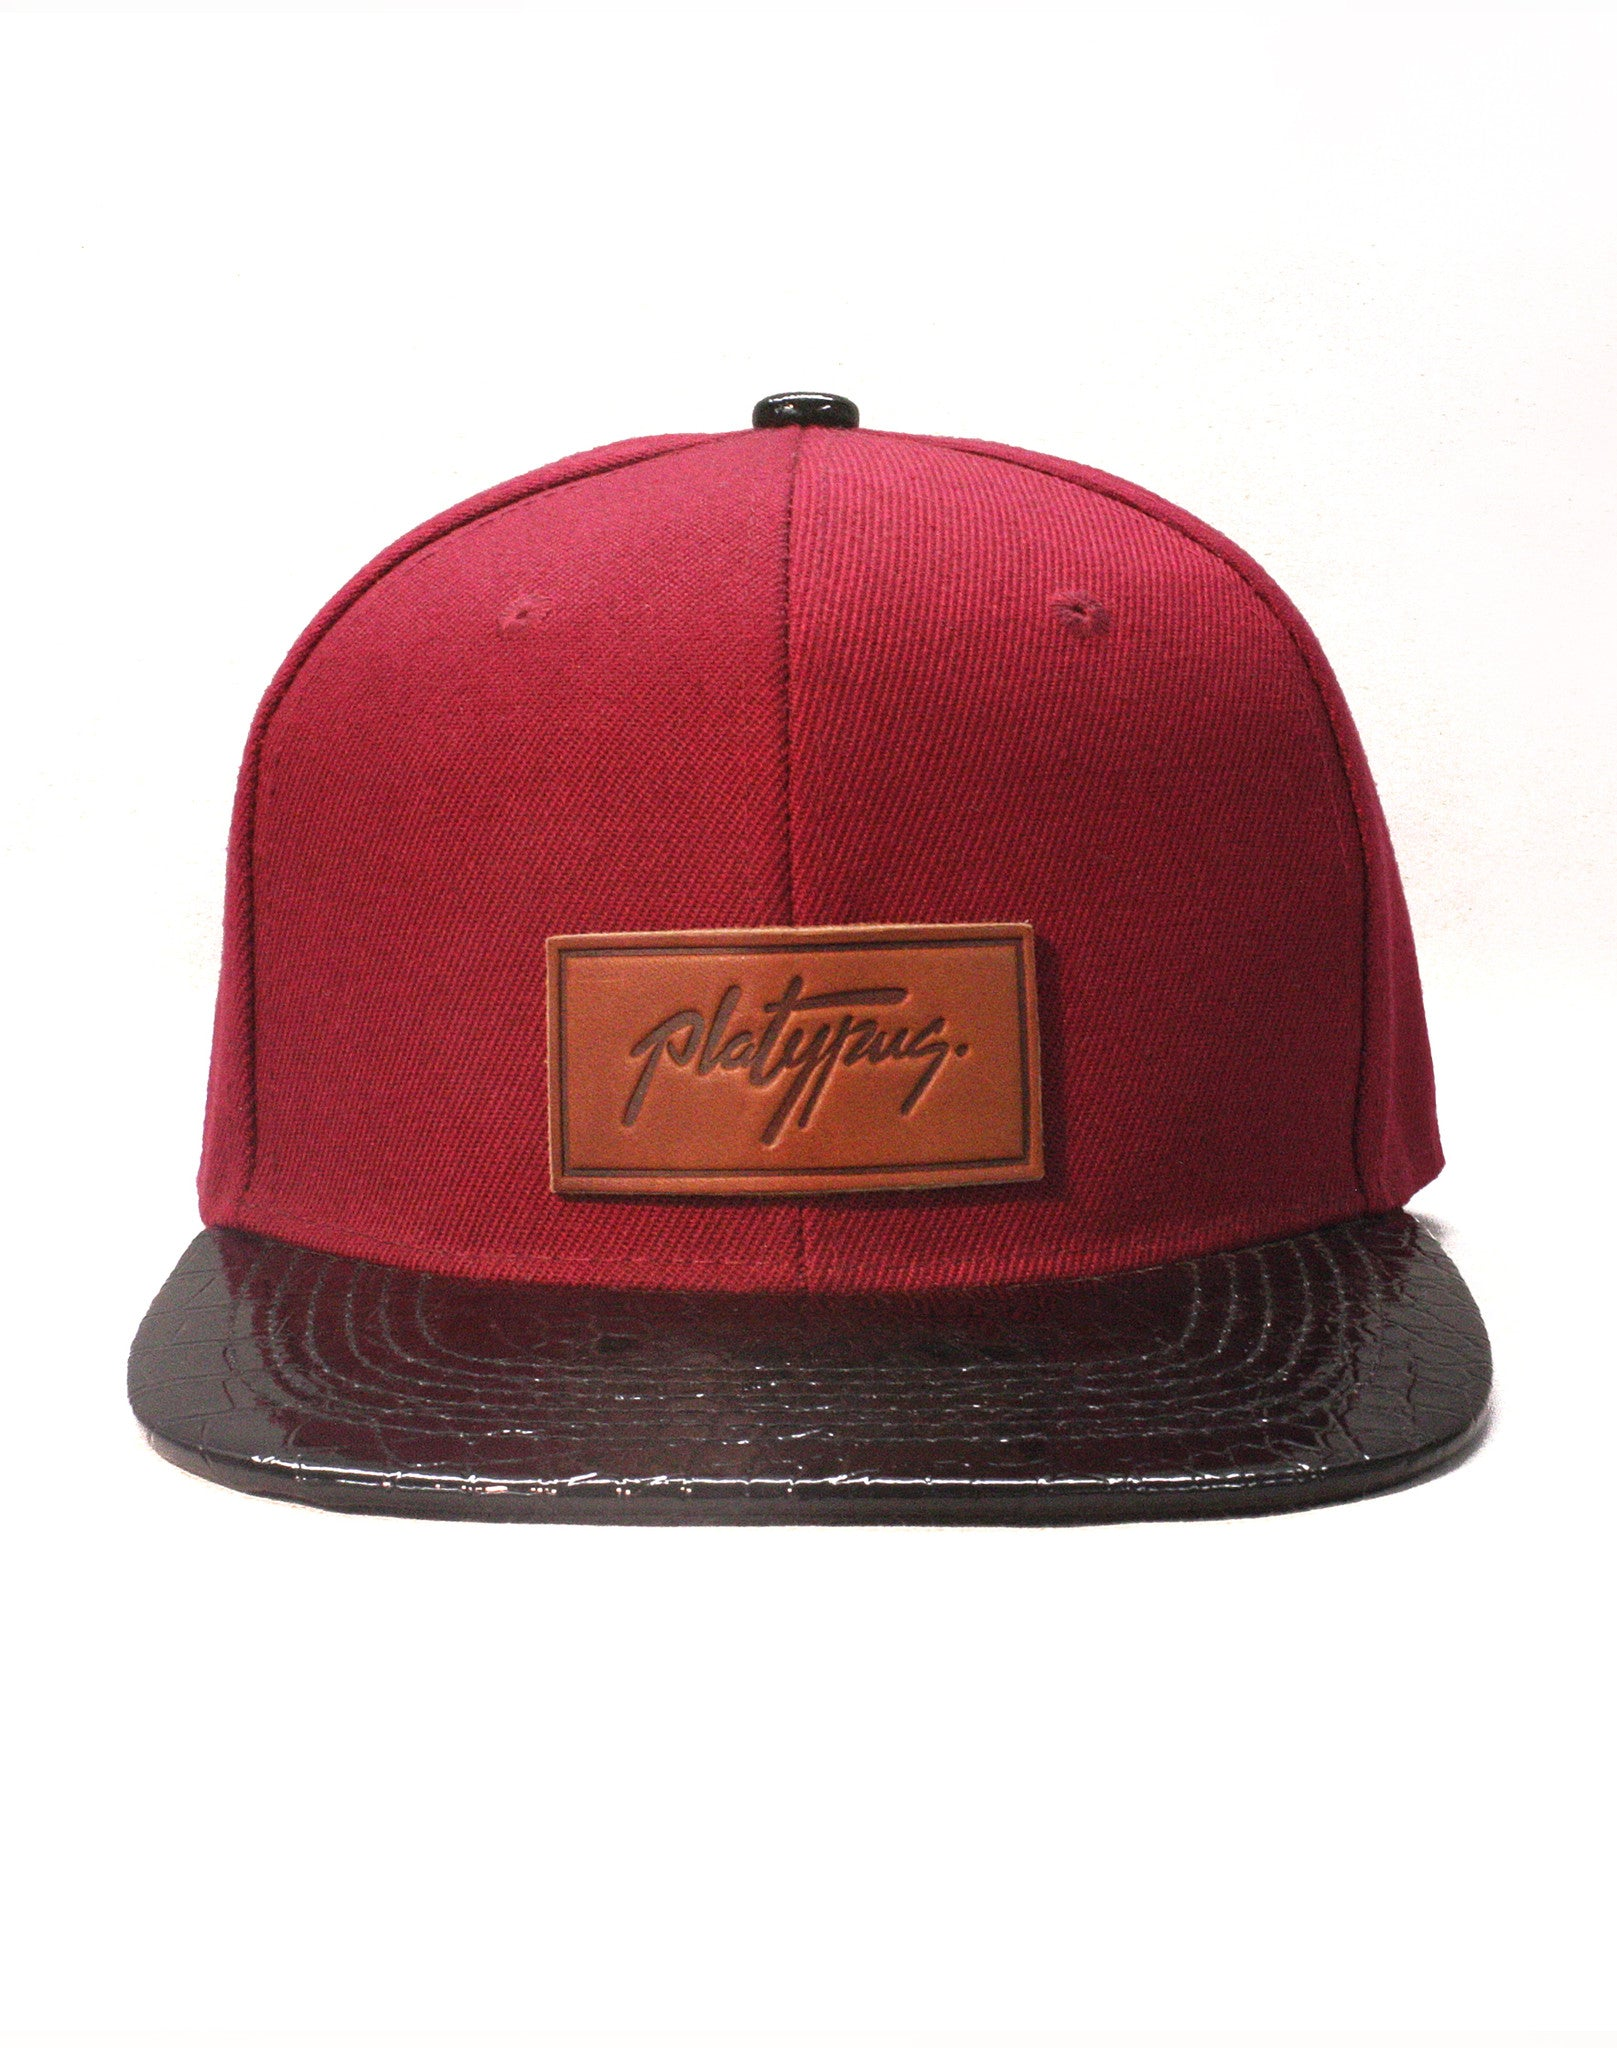 Platypus Independent Clothing Burgundy and Snakeskin Style Snapback Hat